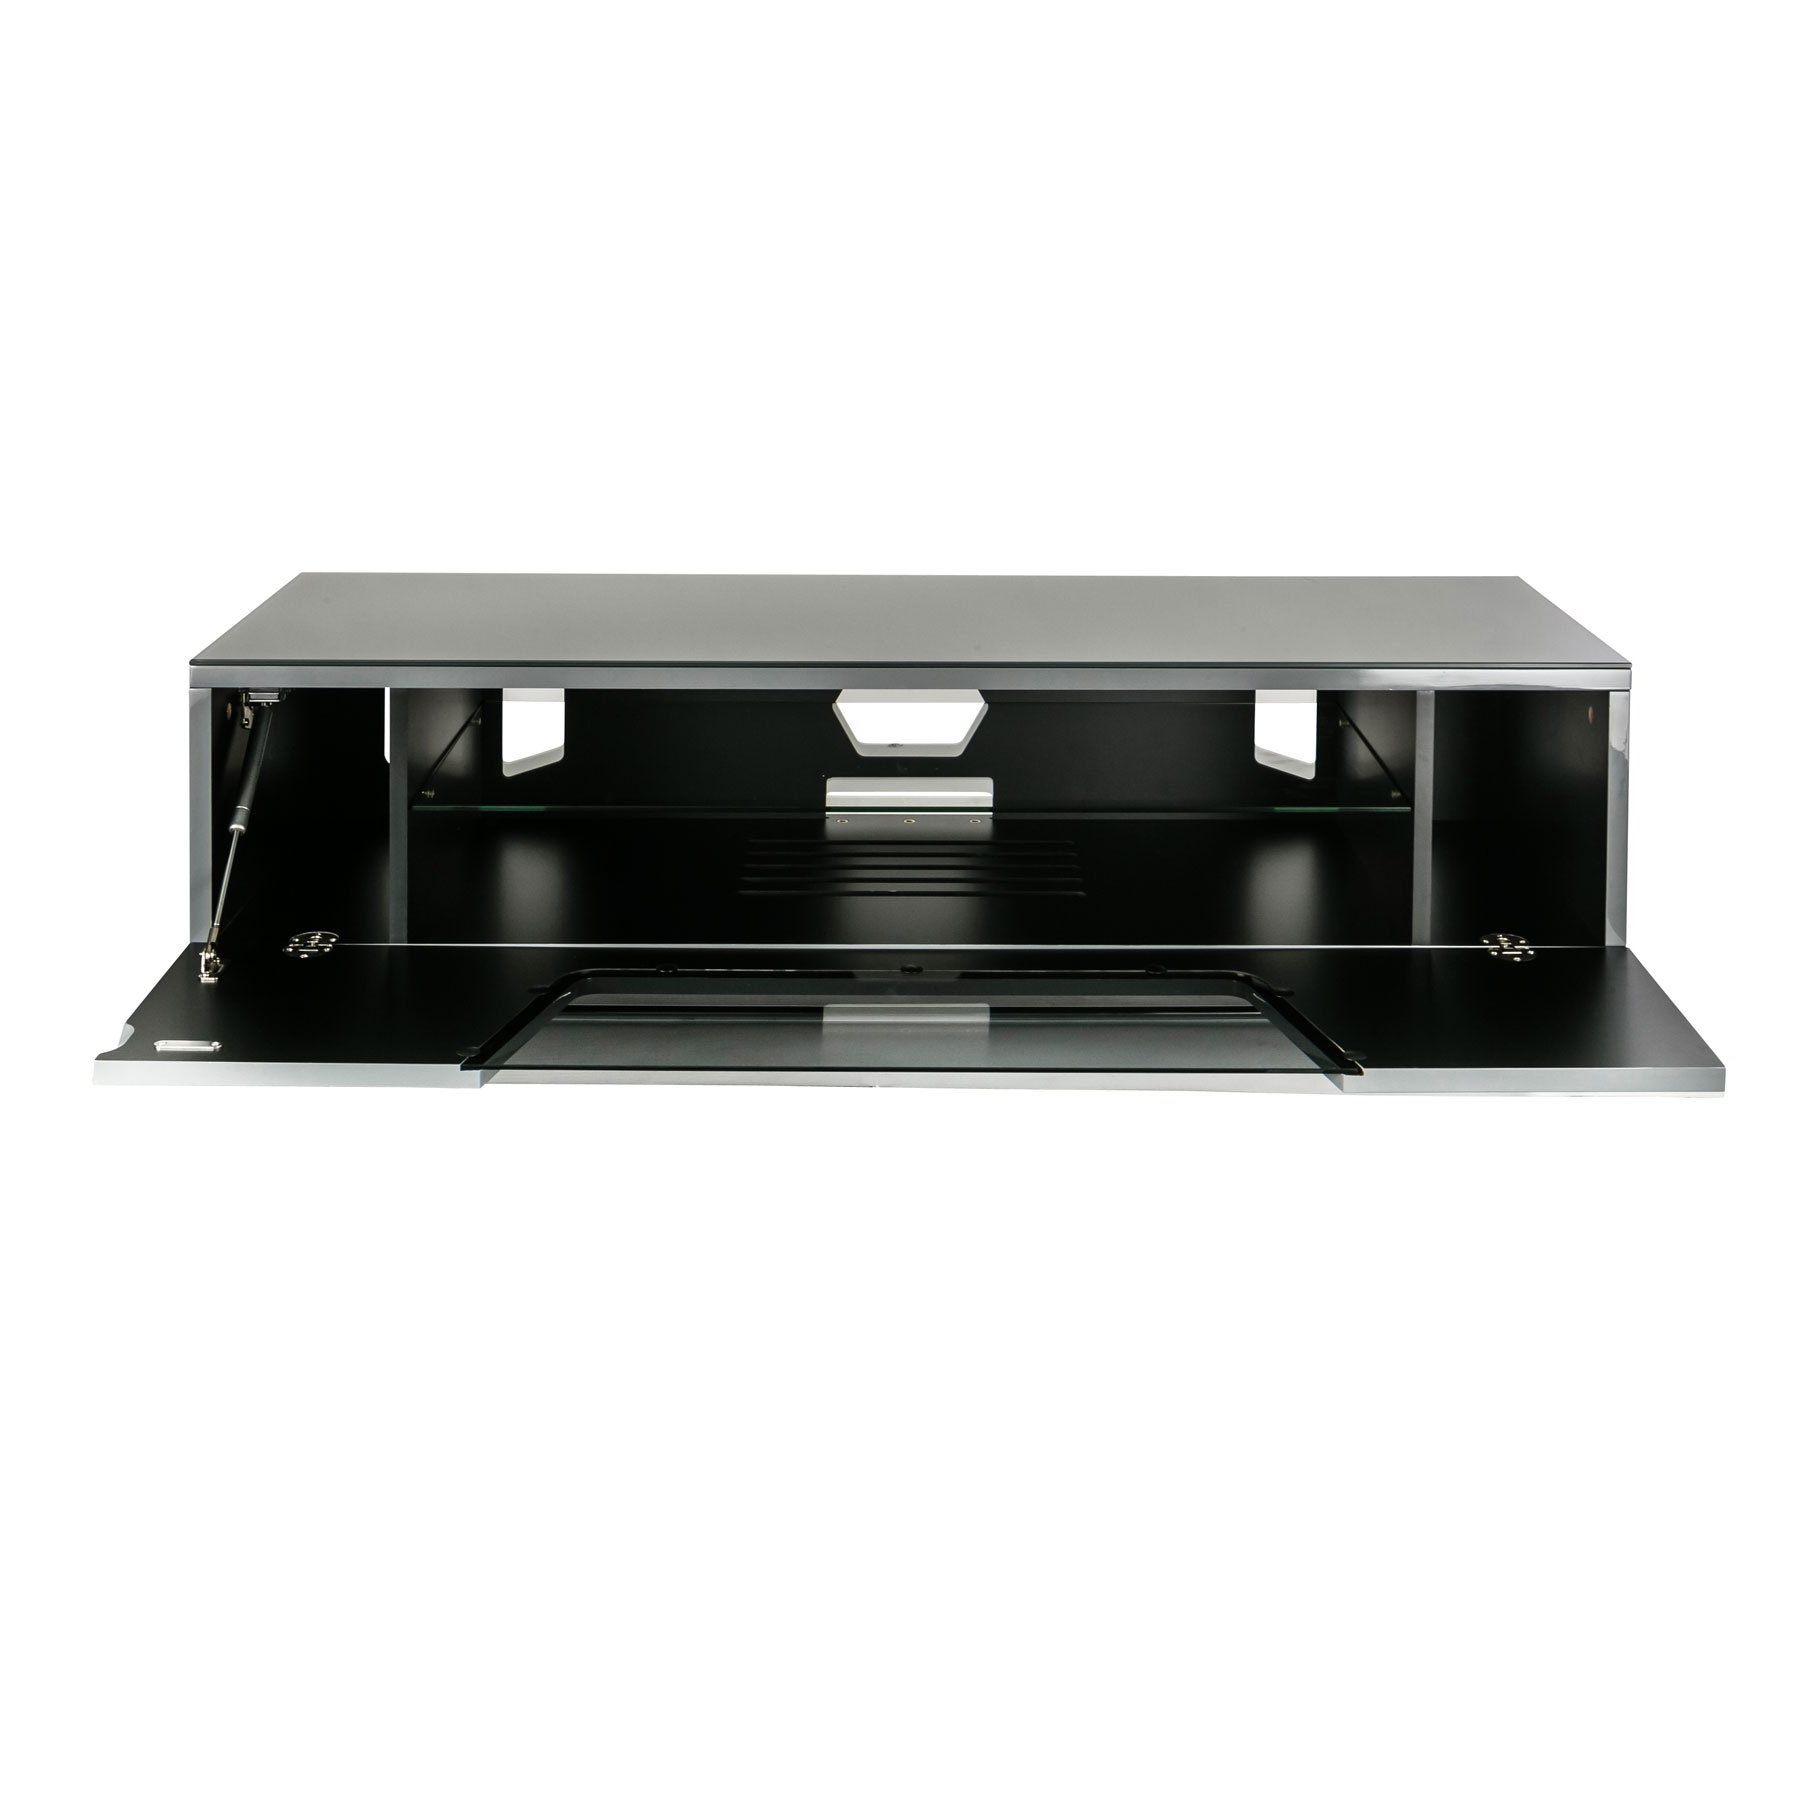 """Recent Alphason Chromium 2 120cm Grey Tv Stand For Up To 60"""" Tvs In Chromium Tv Stands (View 5 of 25)"""